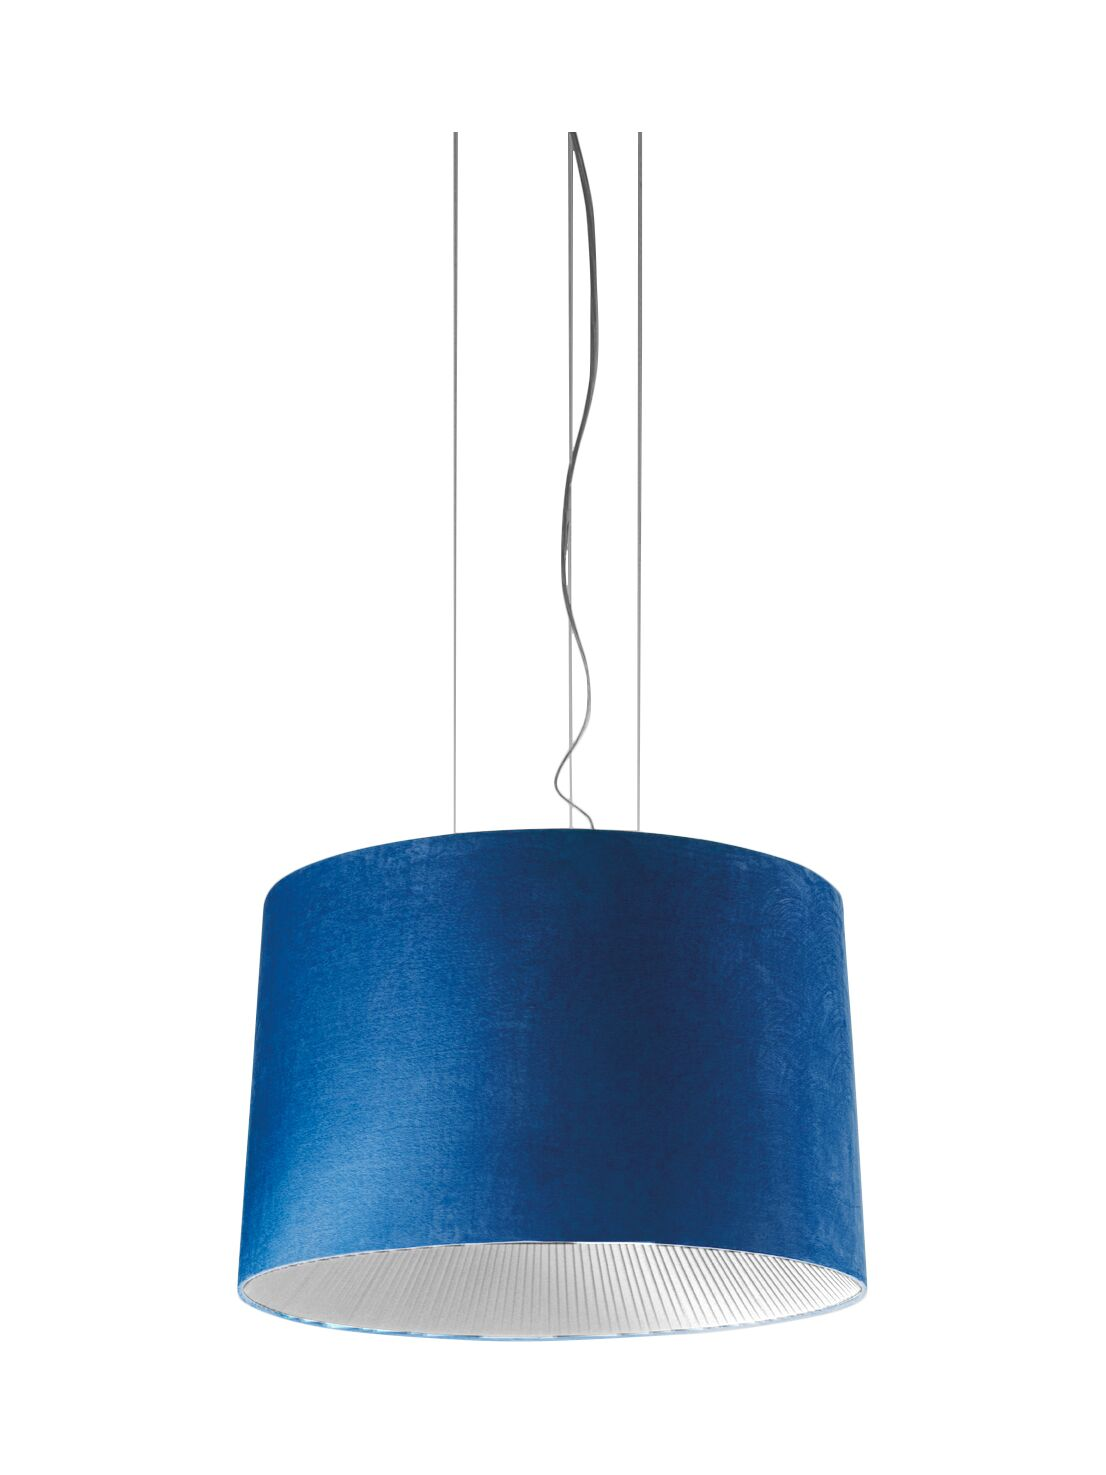 Velvet Drum Pendant (Incandescent) Color: Blue Shade with White Diffuser, Size: 129.88